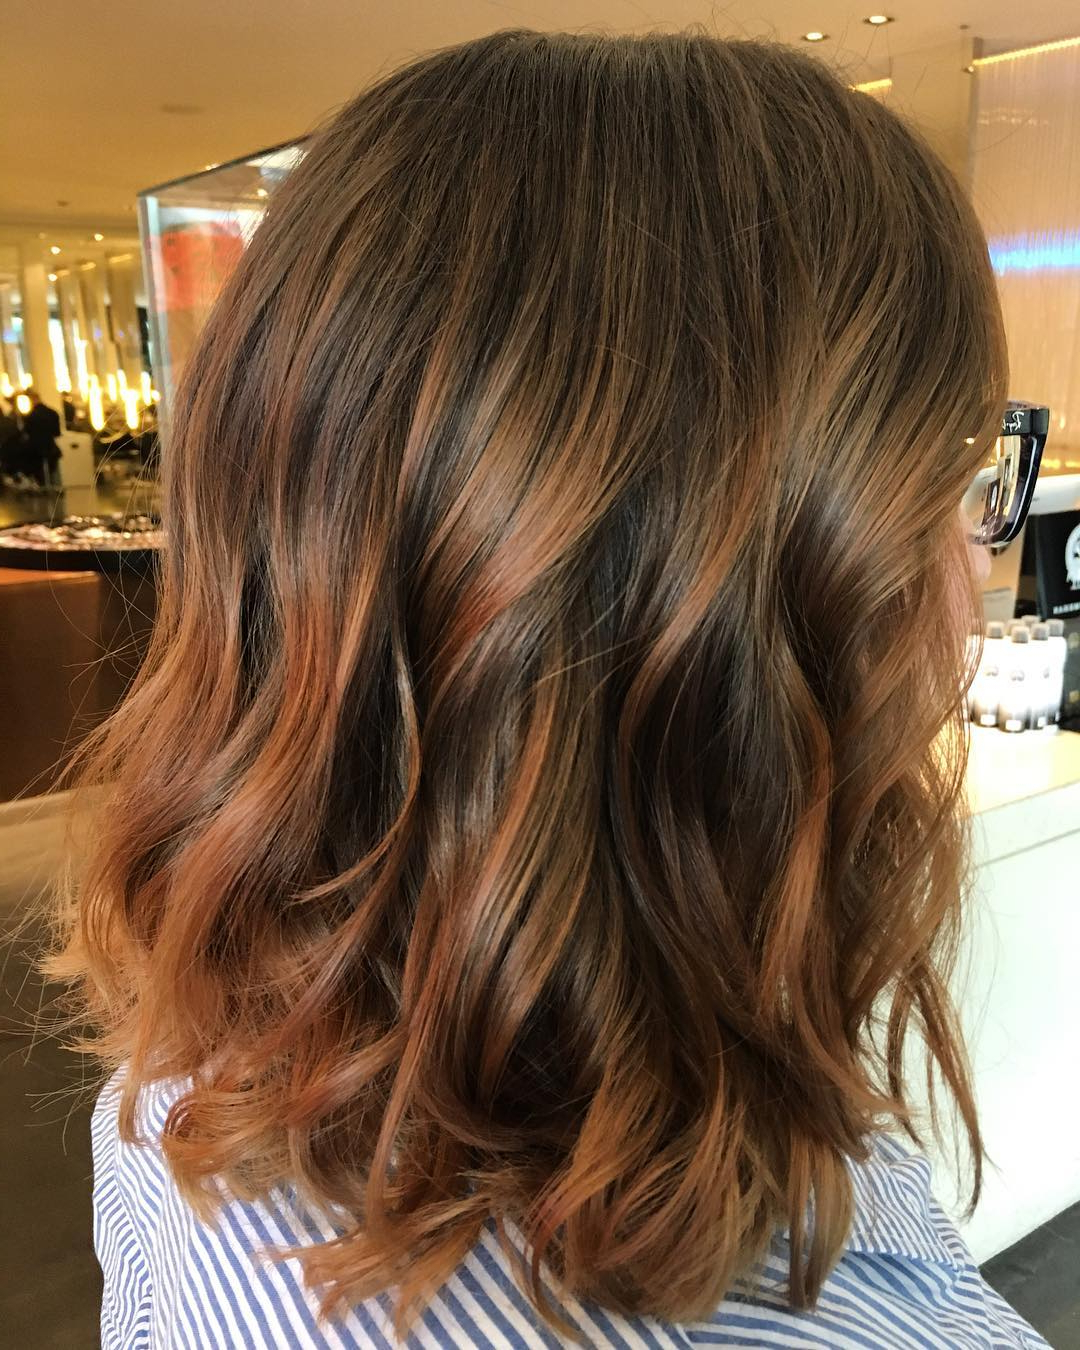 25 Exciting Medium Length Layered Haircuts – Popular Haircuts Pertaining To Well Known Layered Medium Hairstyles (View 2 of 20)